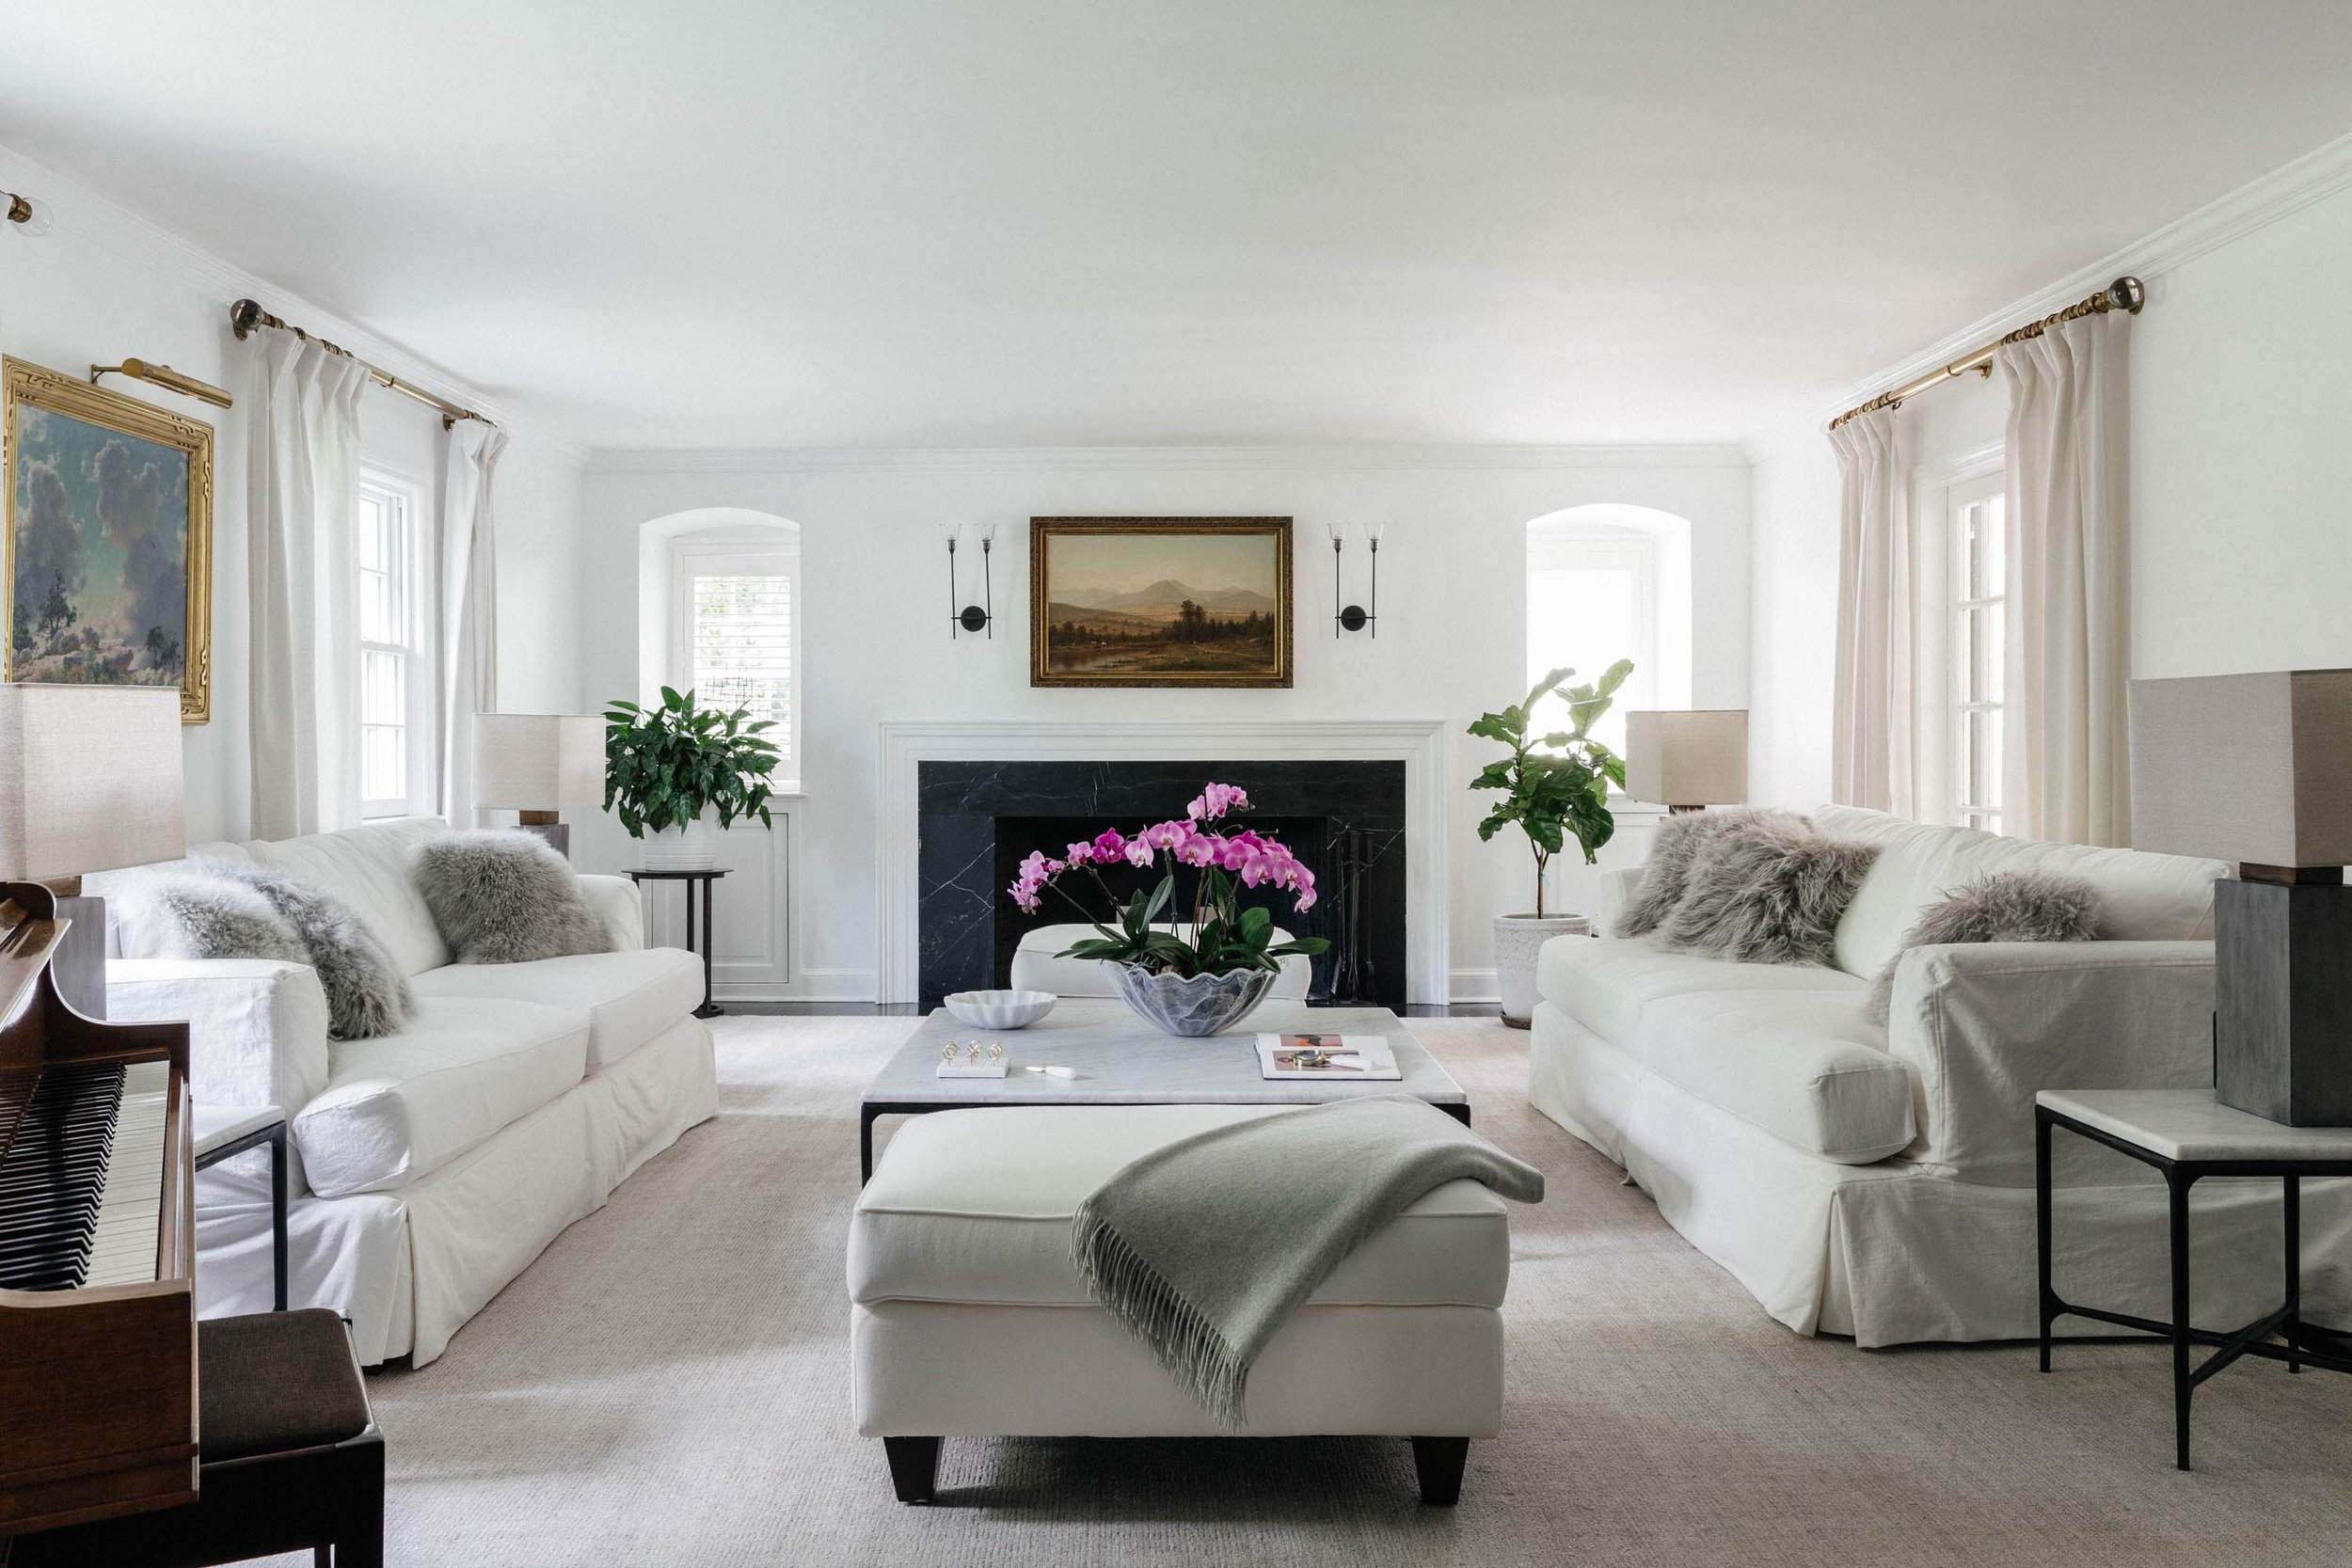 Living room with fireplace, white painted walls, white sofa, center table and ottoman